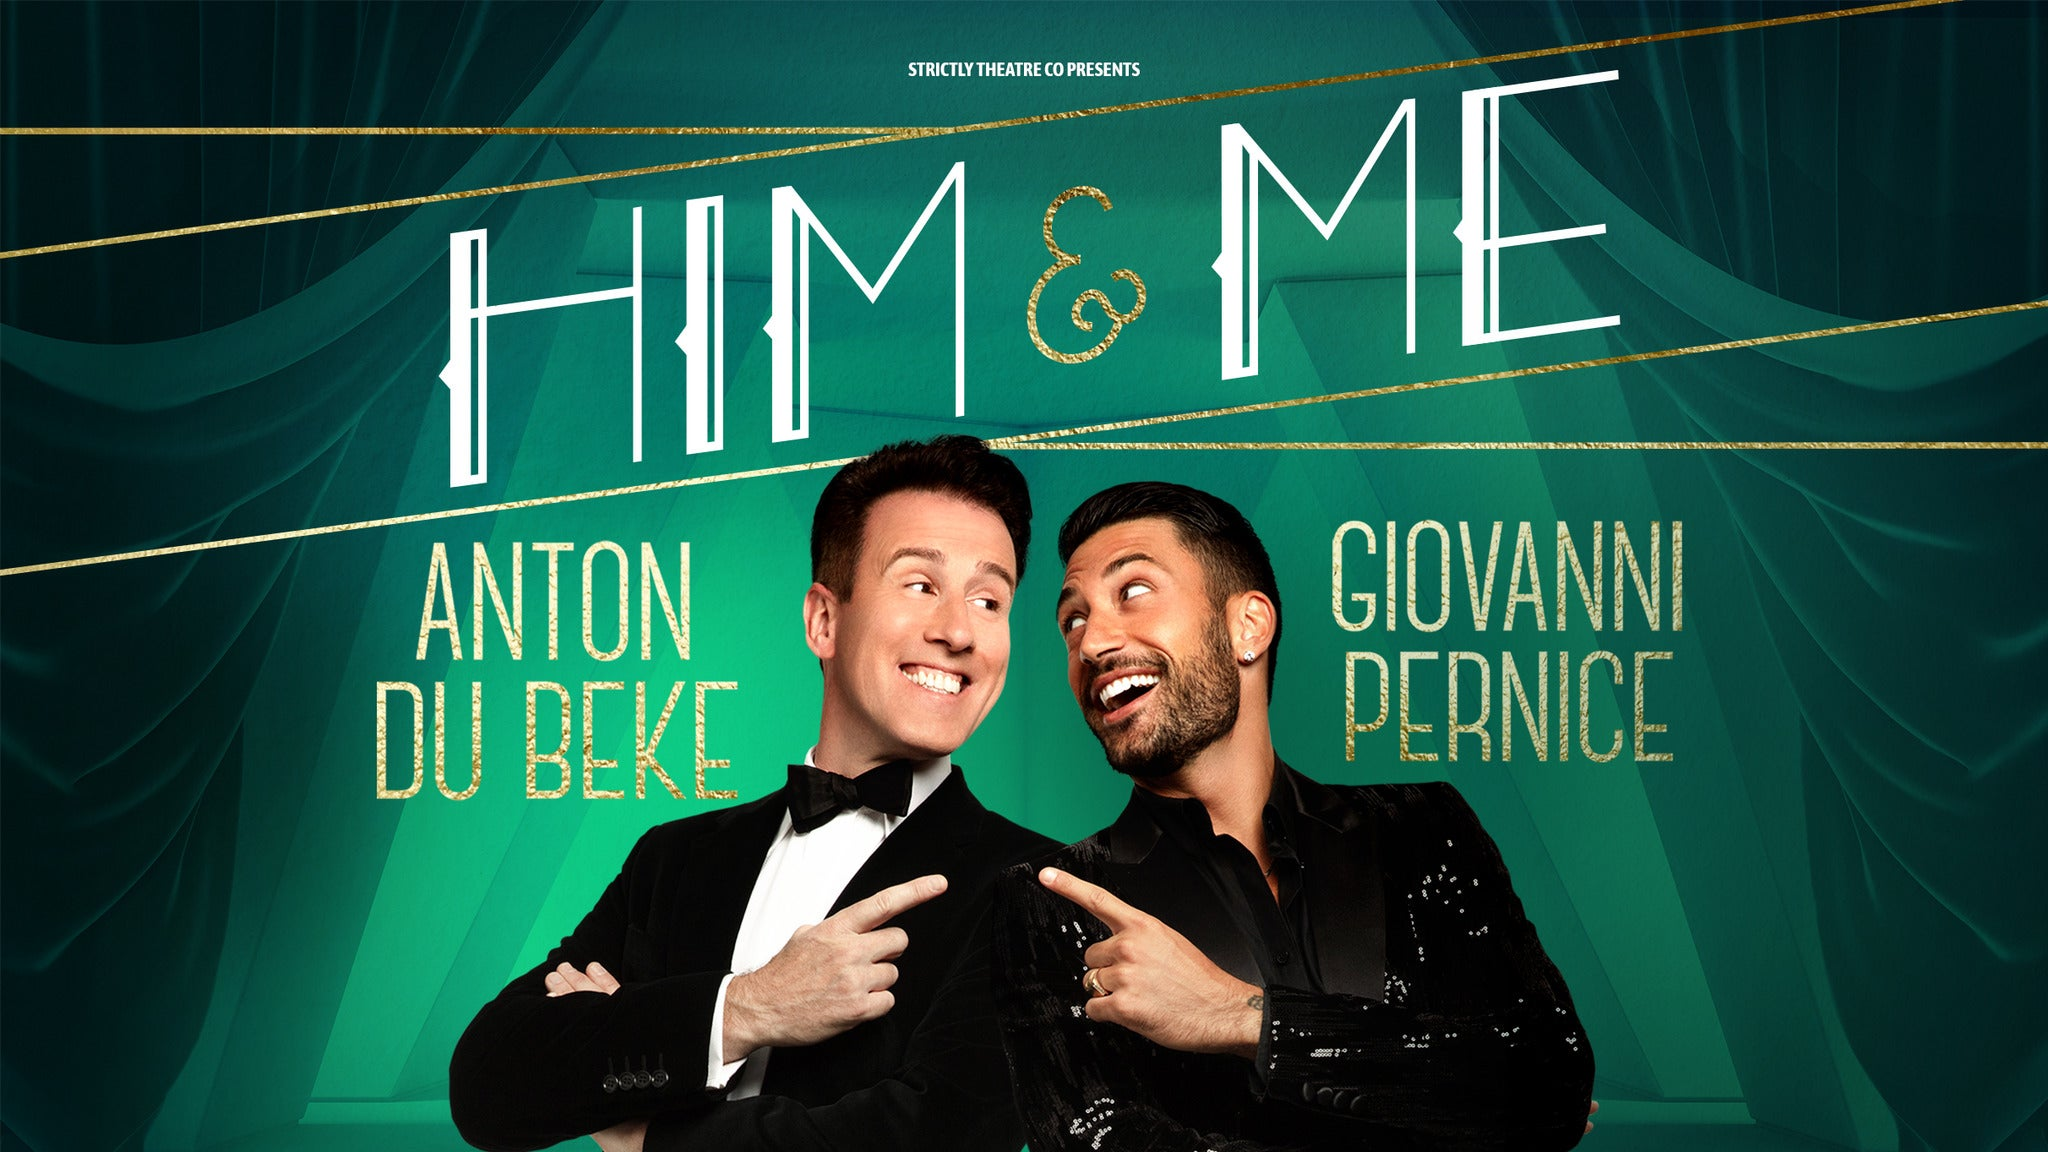 Anton and Giovanni tickets (Copyright © Ticketmaster)